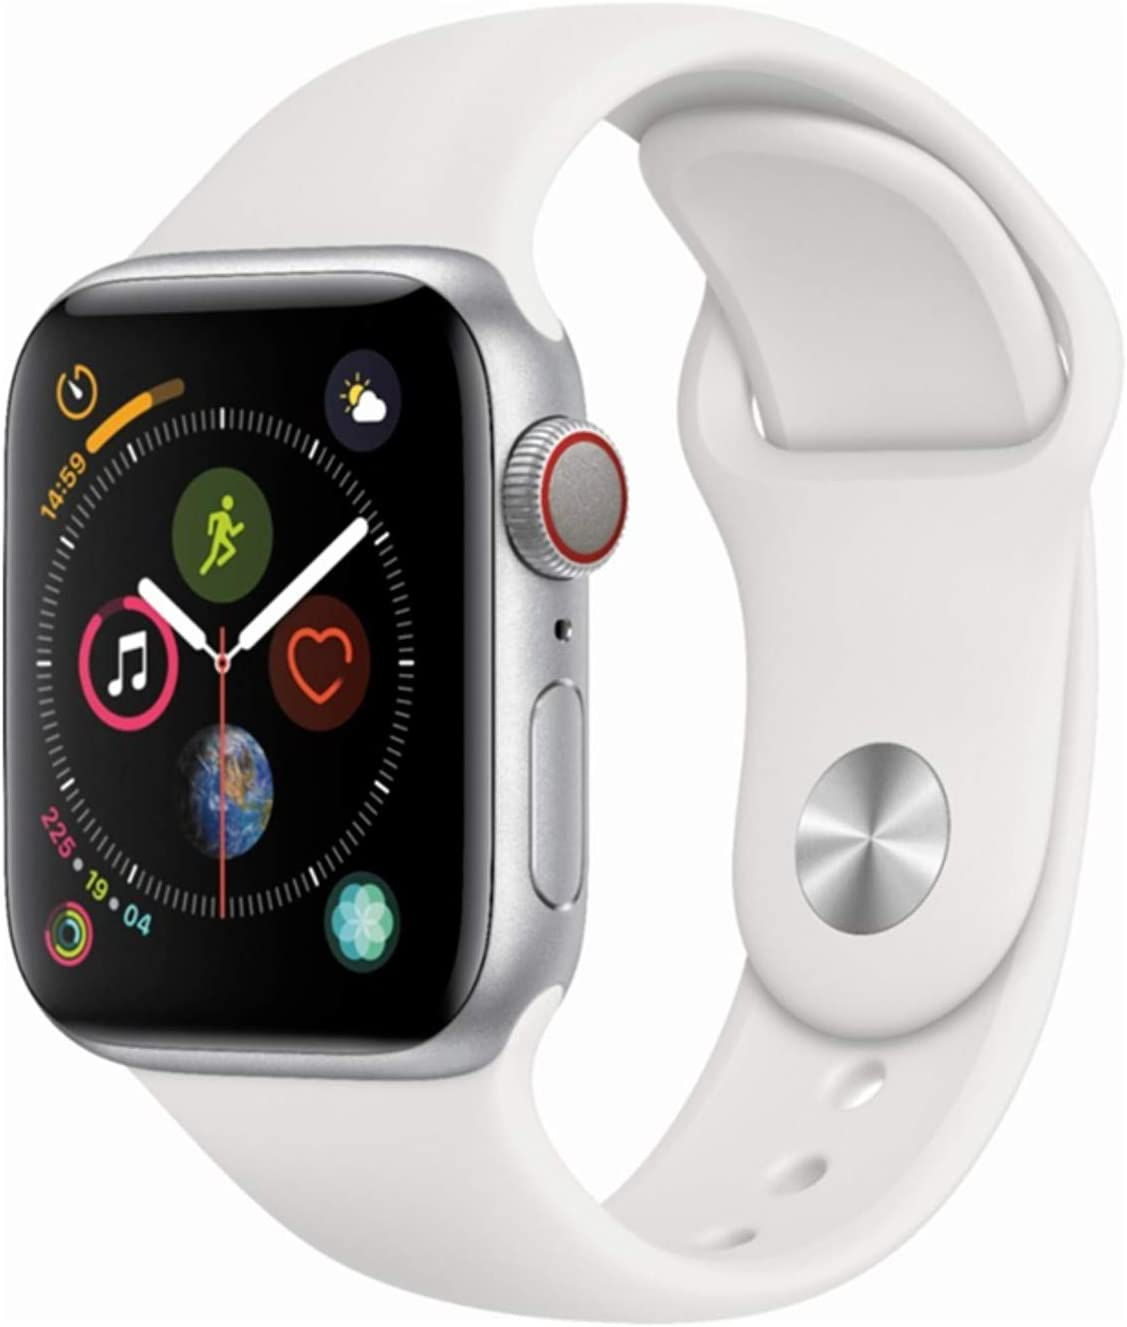 Apple Watch Series 4 (GPS + Cellular, 44mm) - Silver Aluminium Case with White Sport Band (Renewed) 61mriKk3yiLSL1500_